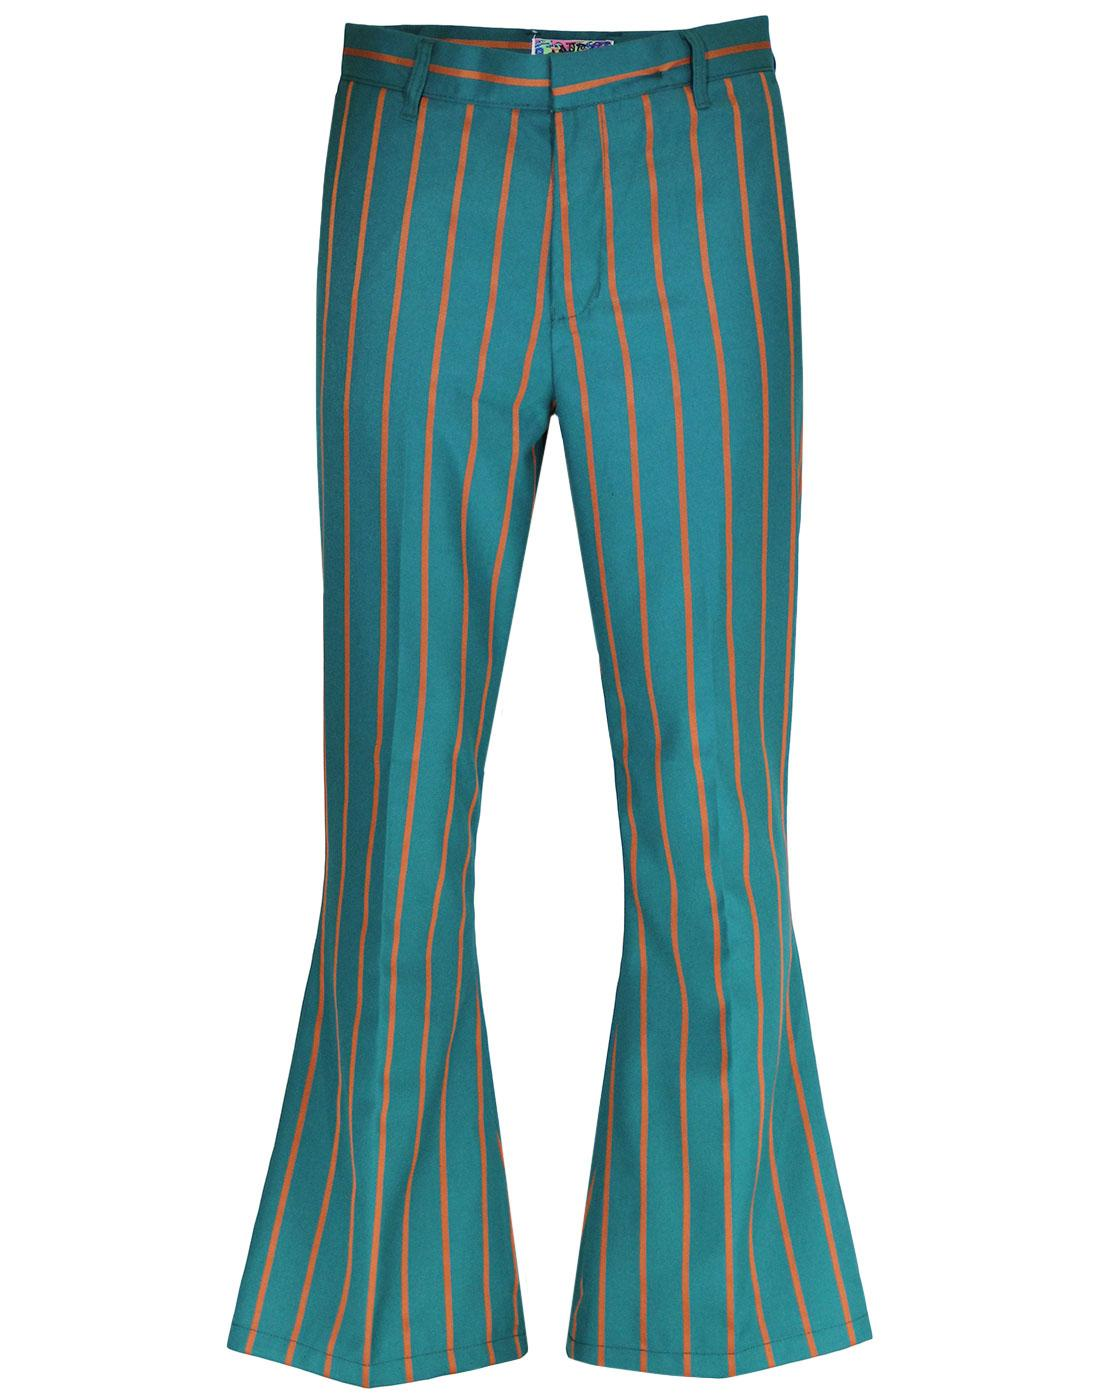 Relic MADCAP ENGLAND Stripe Bellbottom Trousers